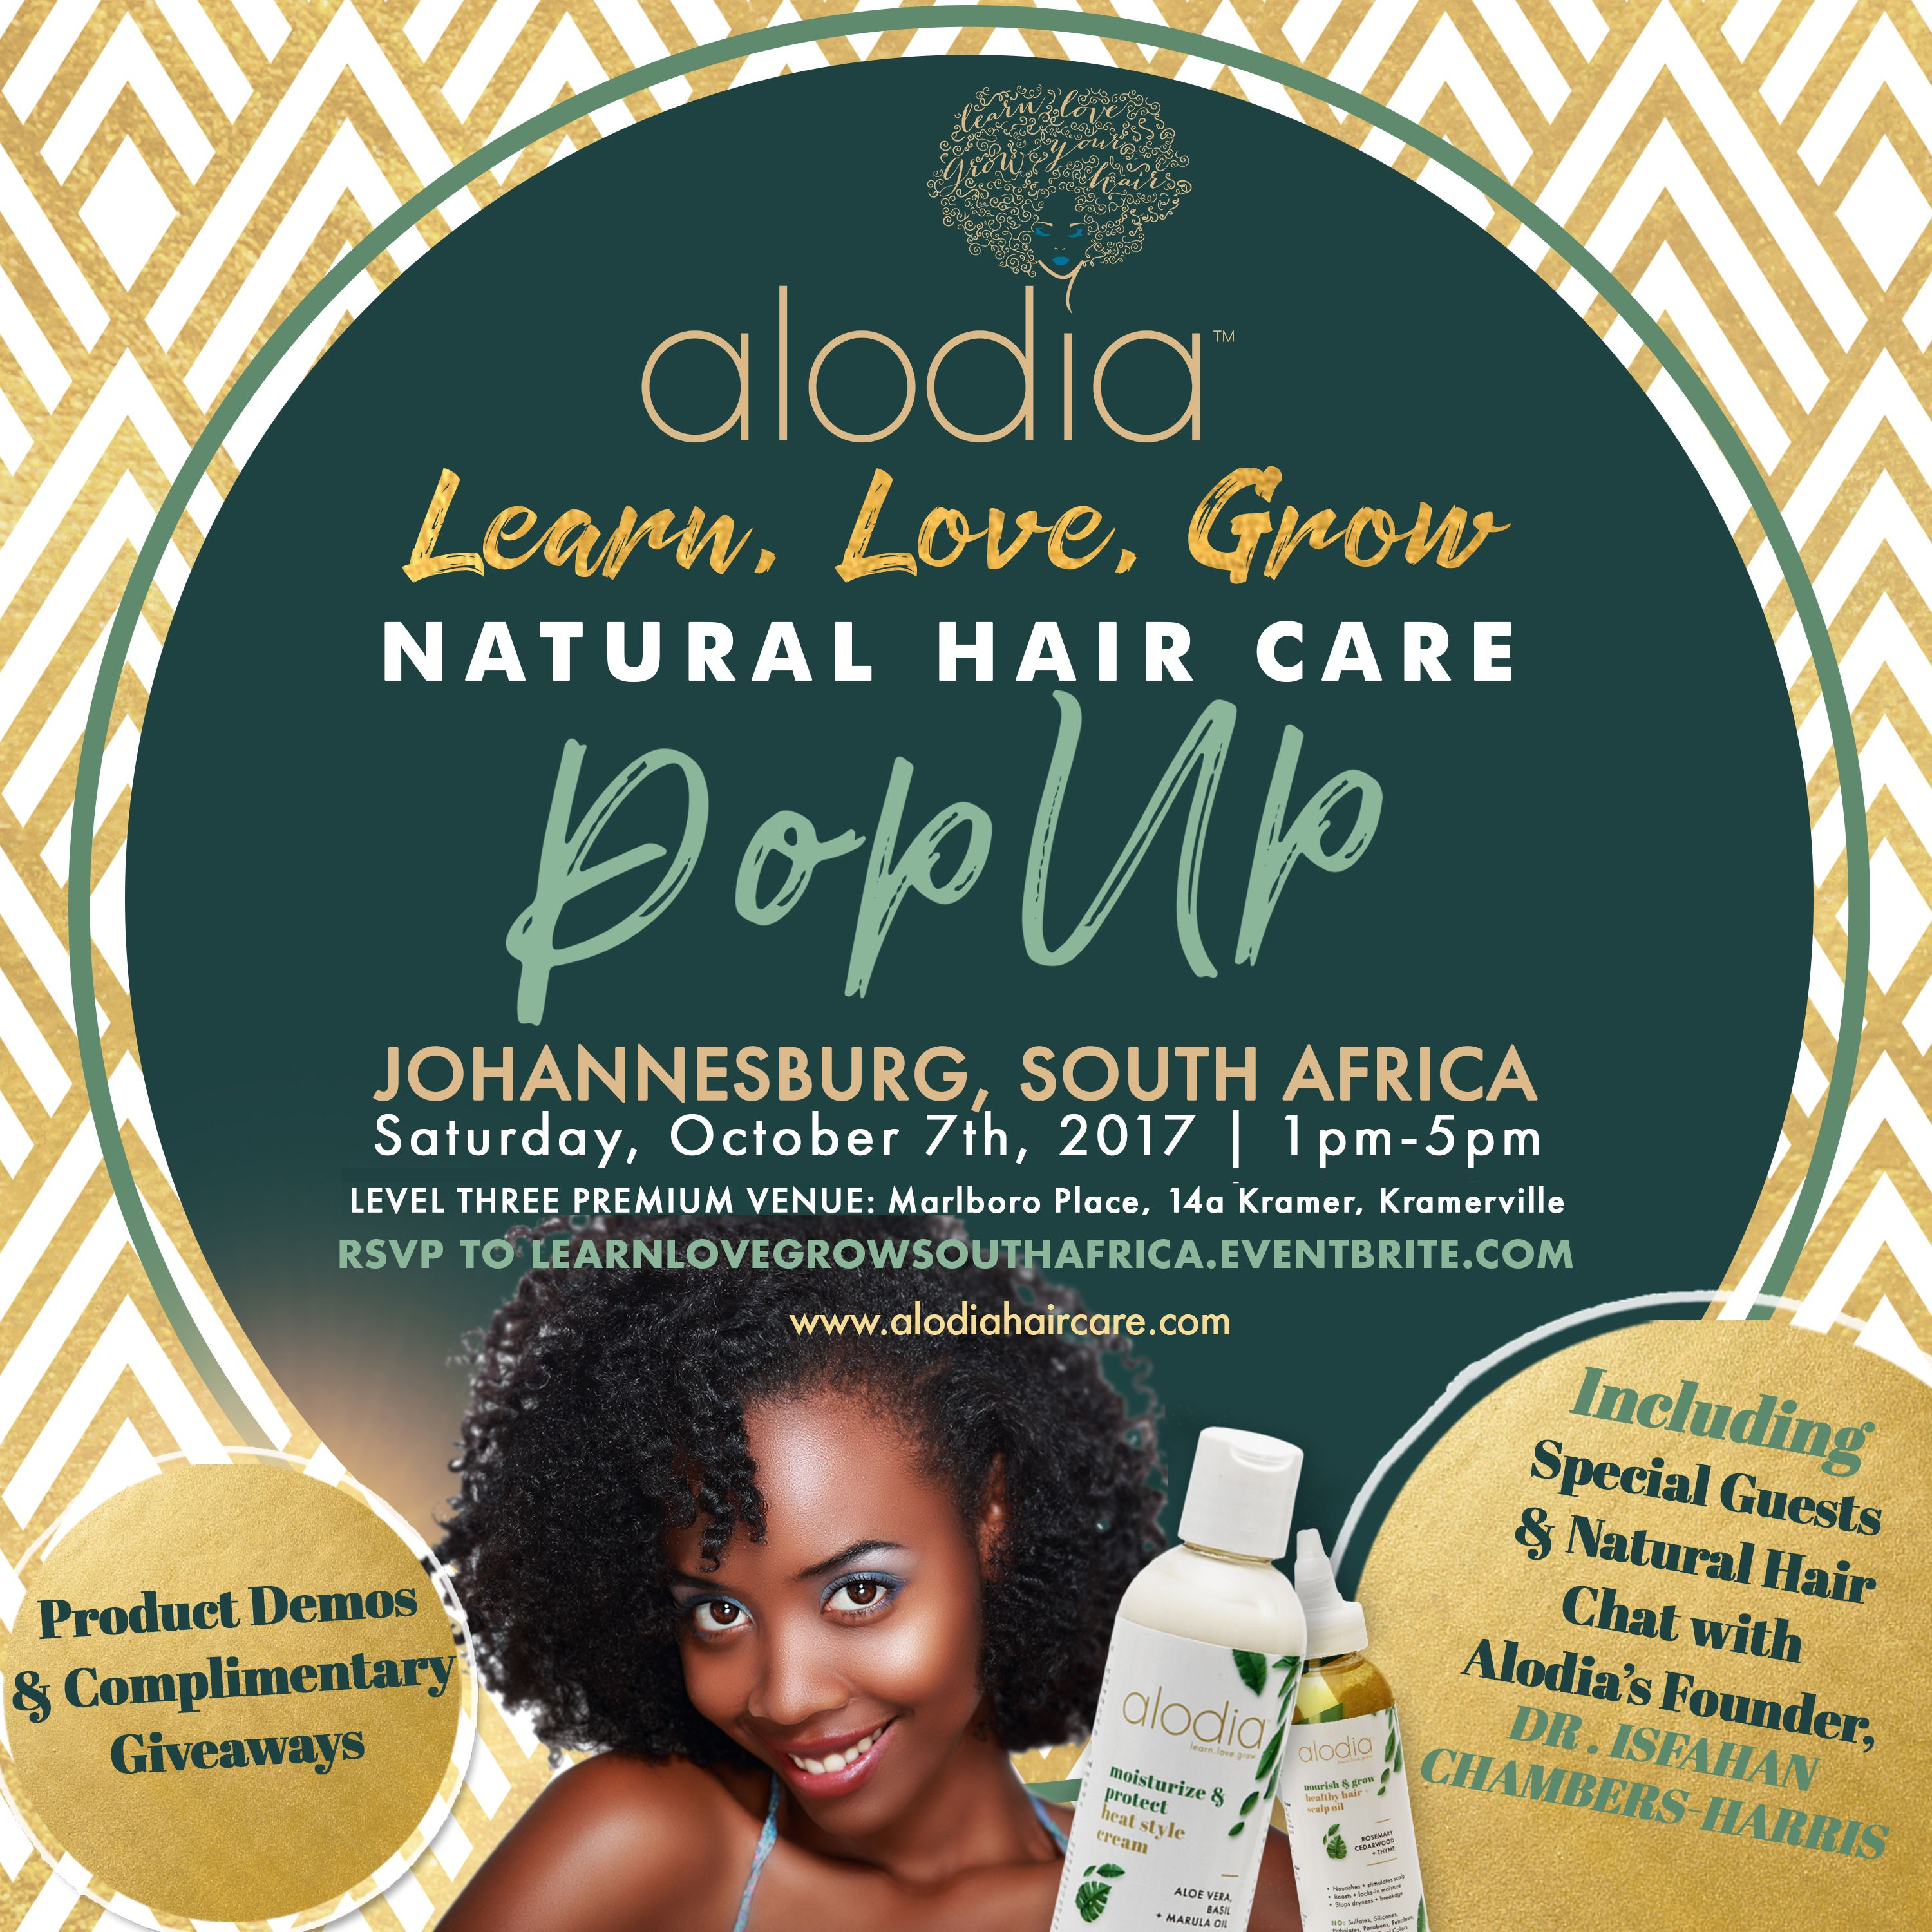 We Re Taking Our Empowering Story Abroad The Learn Love Grow Natural Hair Care Pop Natural Hair Styles How To Grow Natural Hair All Natural Hair Products